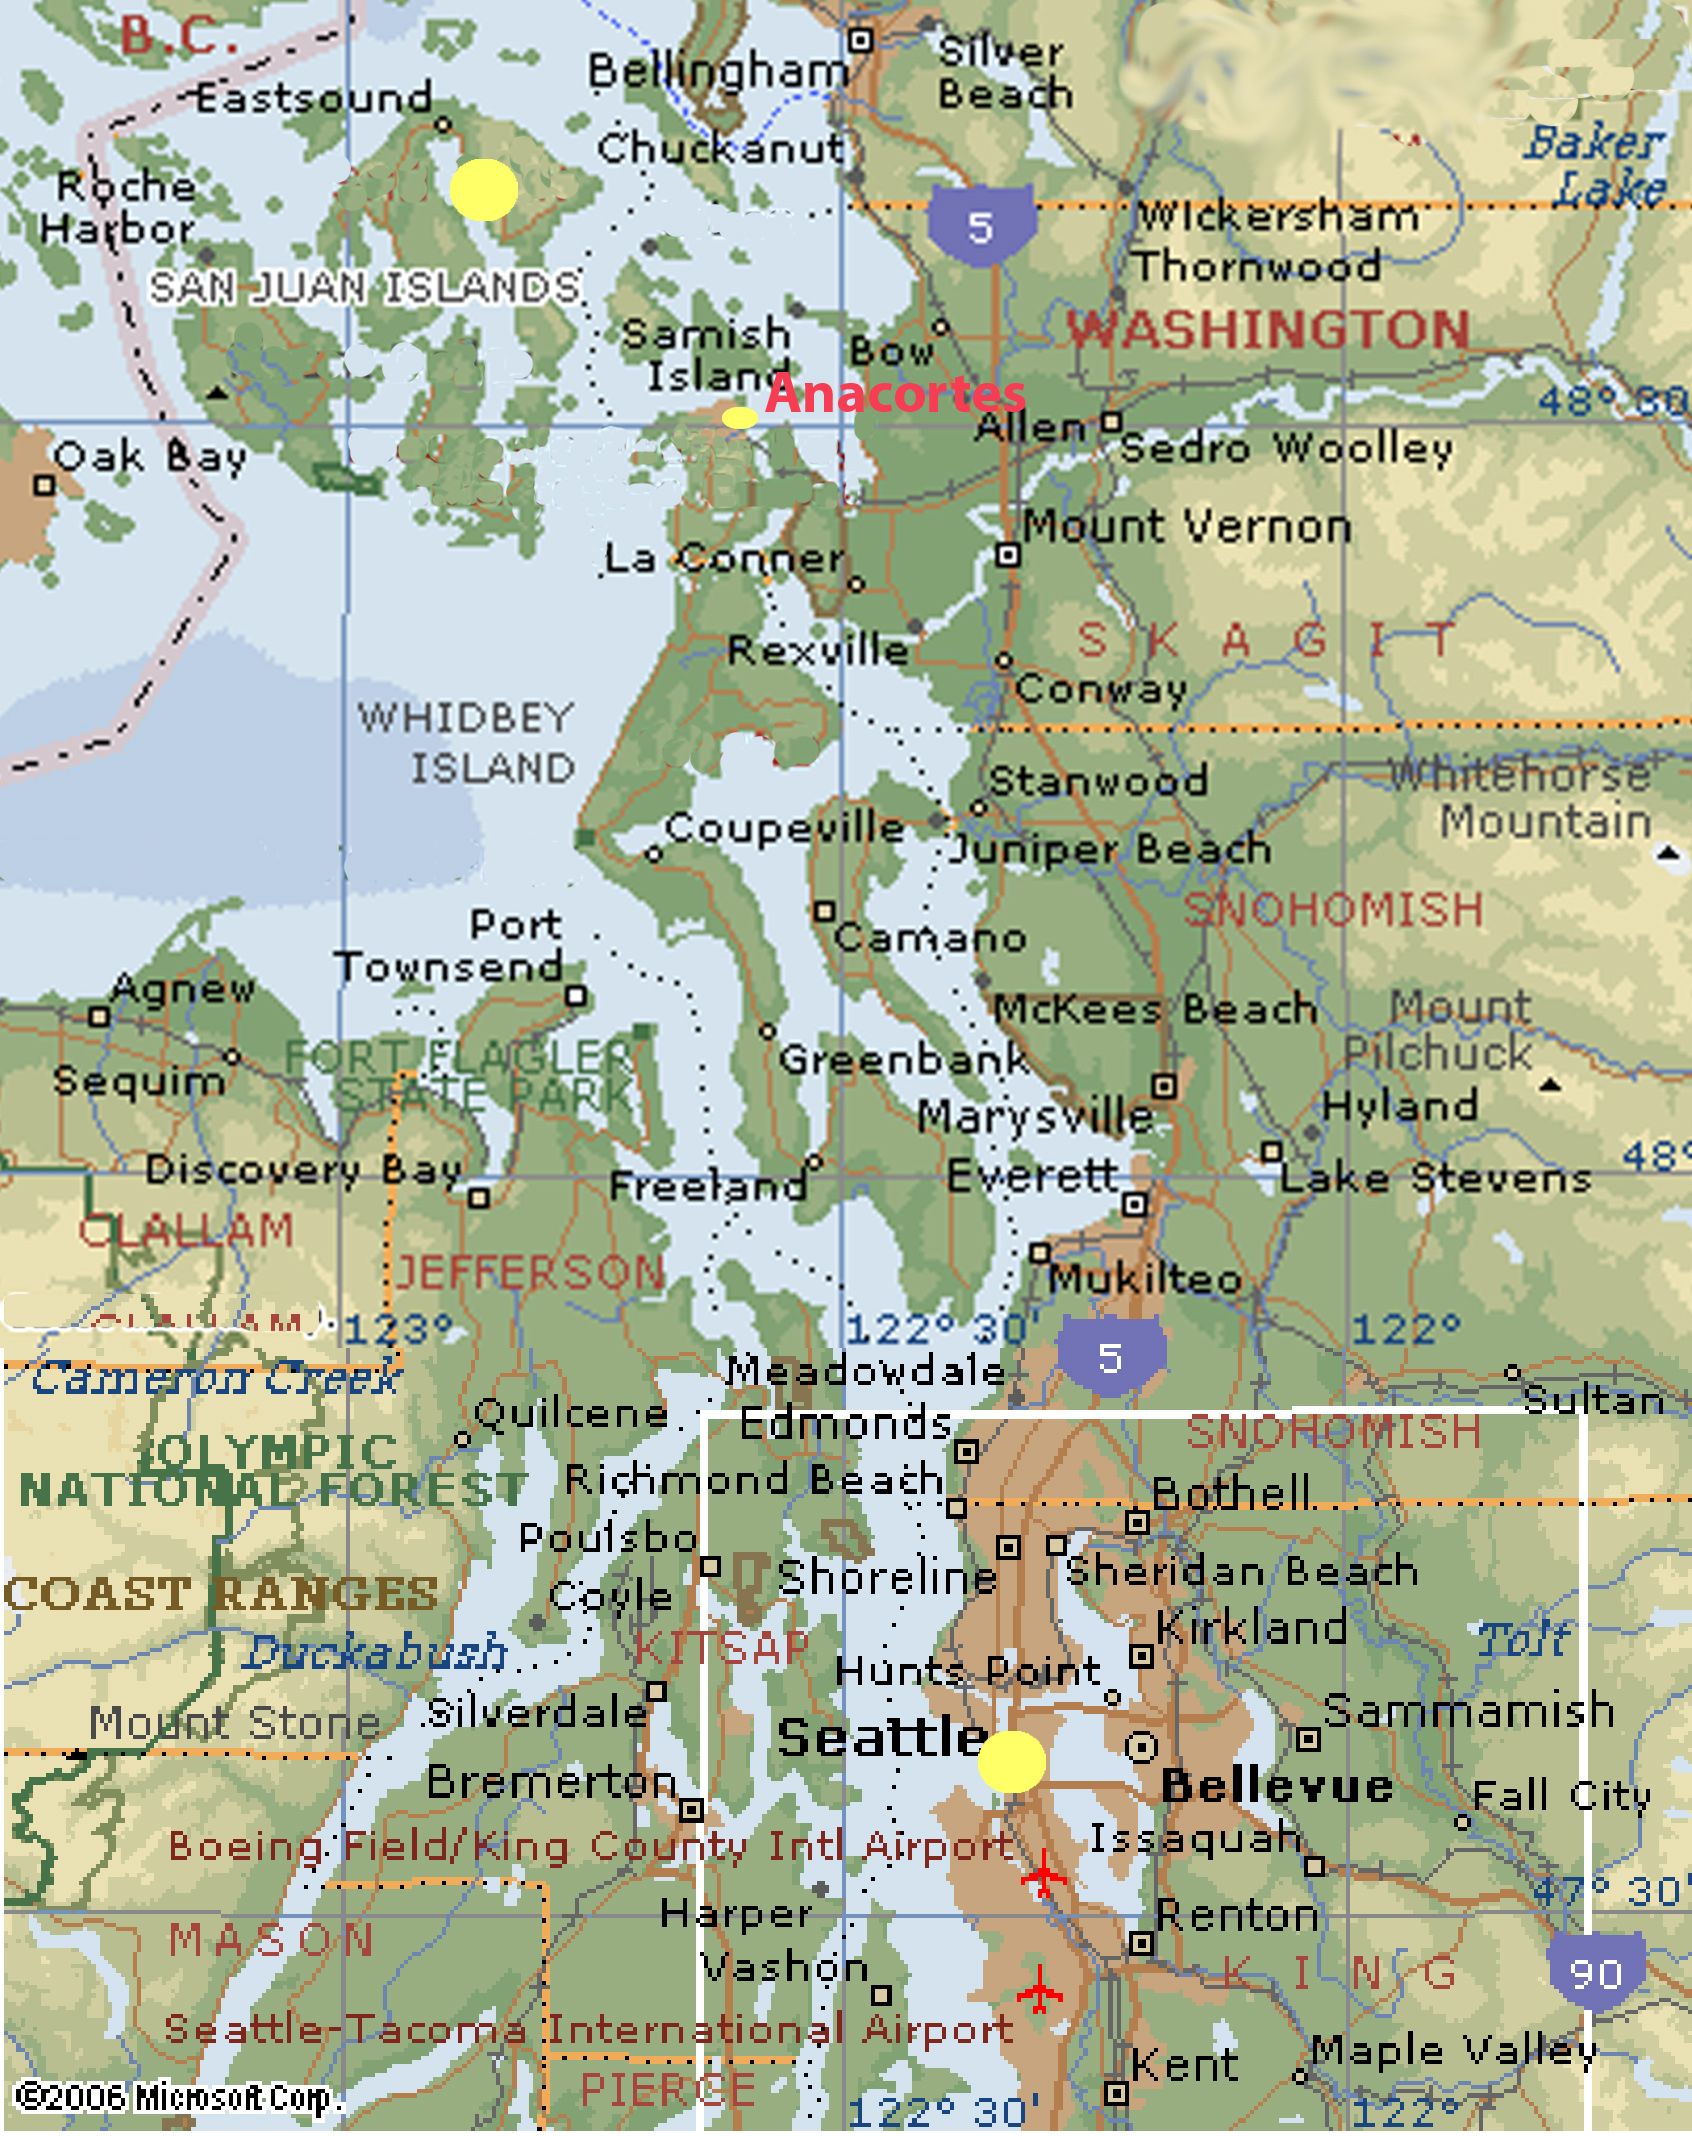 Washington state west coast map see map details from lasp colorado